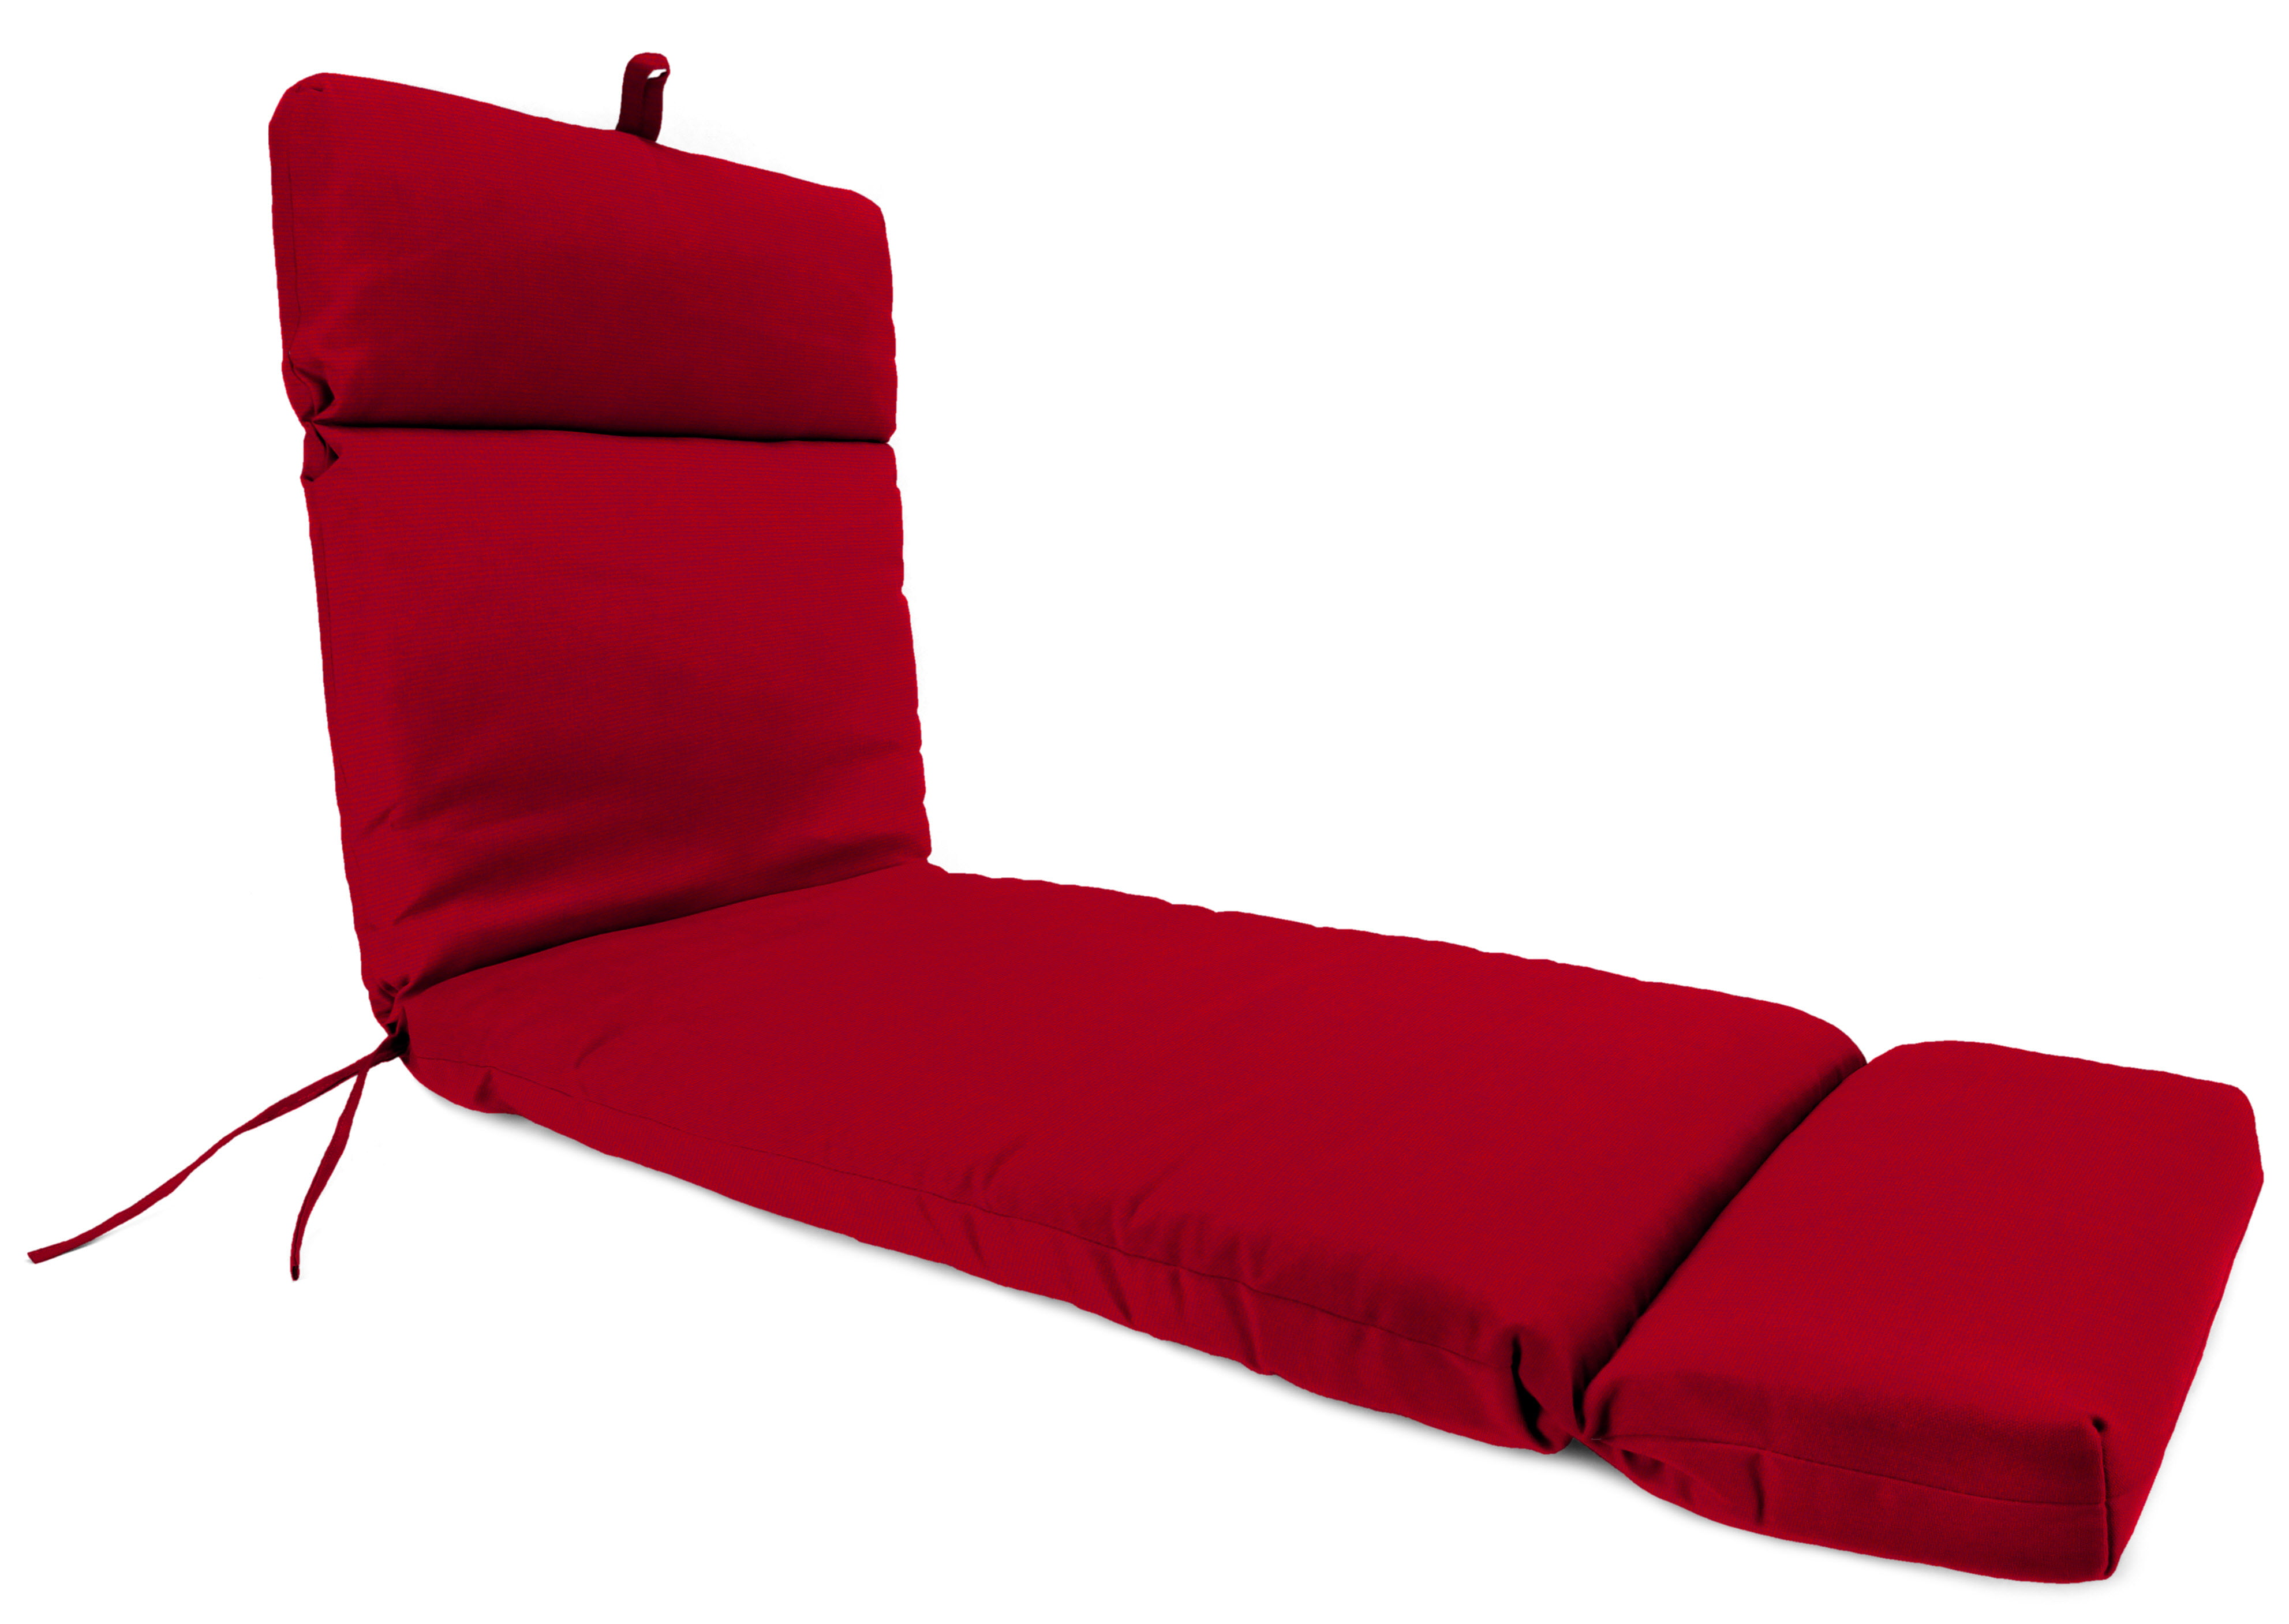 Mainstays Solid Red Outdoor Patio Chaise Lounge Cushion